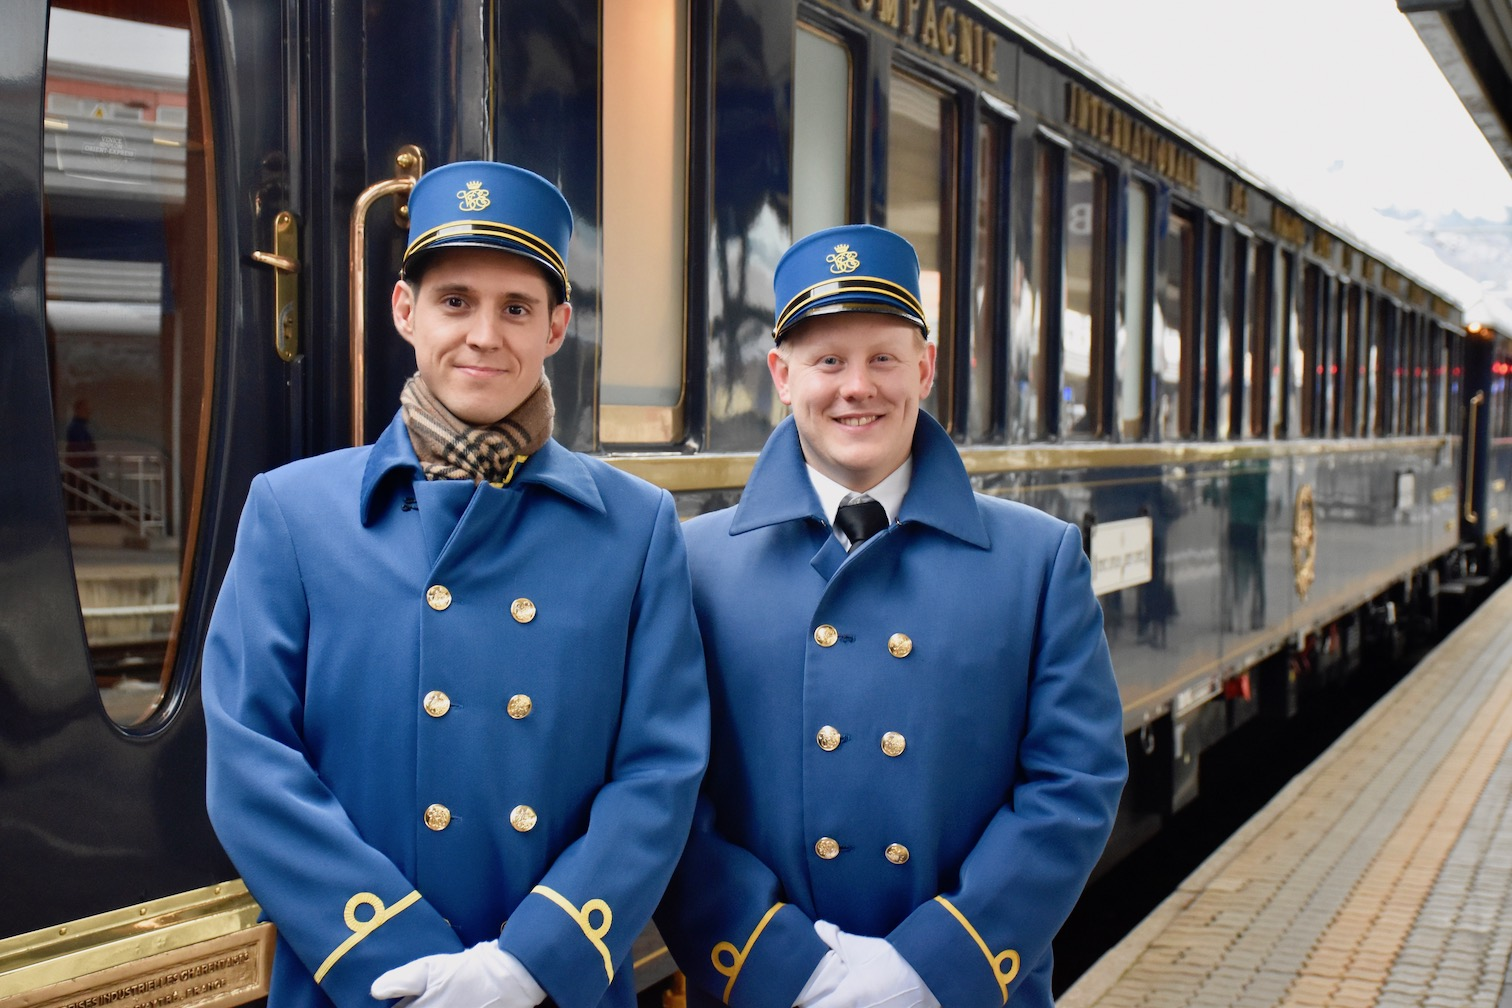 Venice Simplon Orient Express stewards welcoming on board.